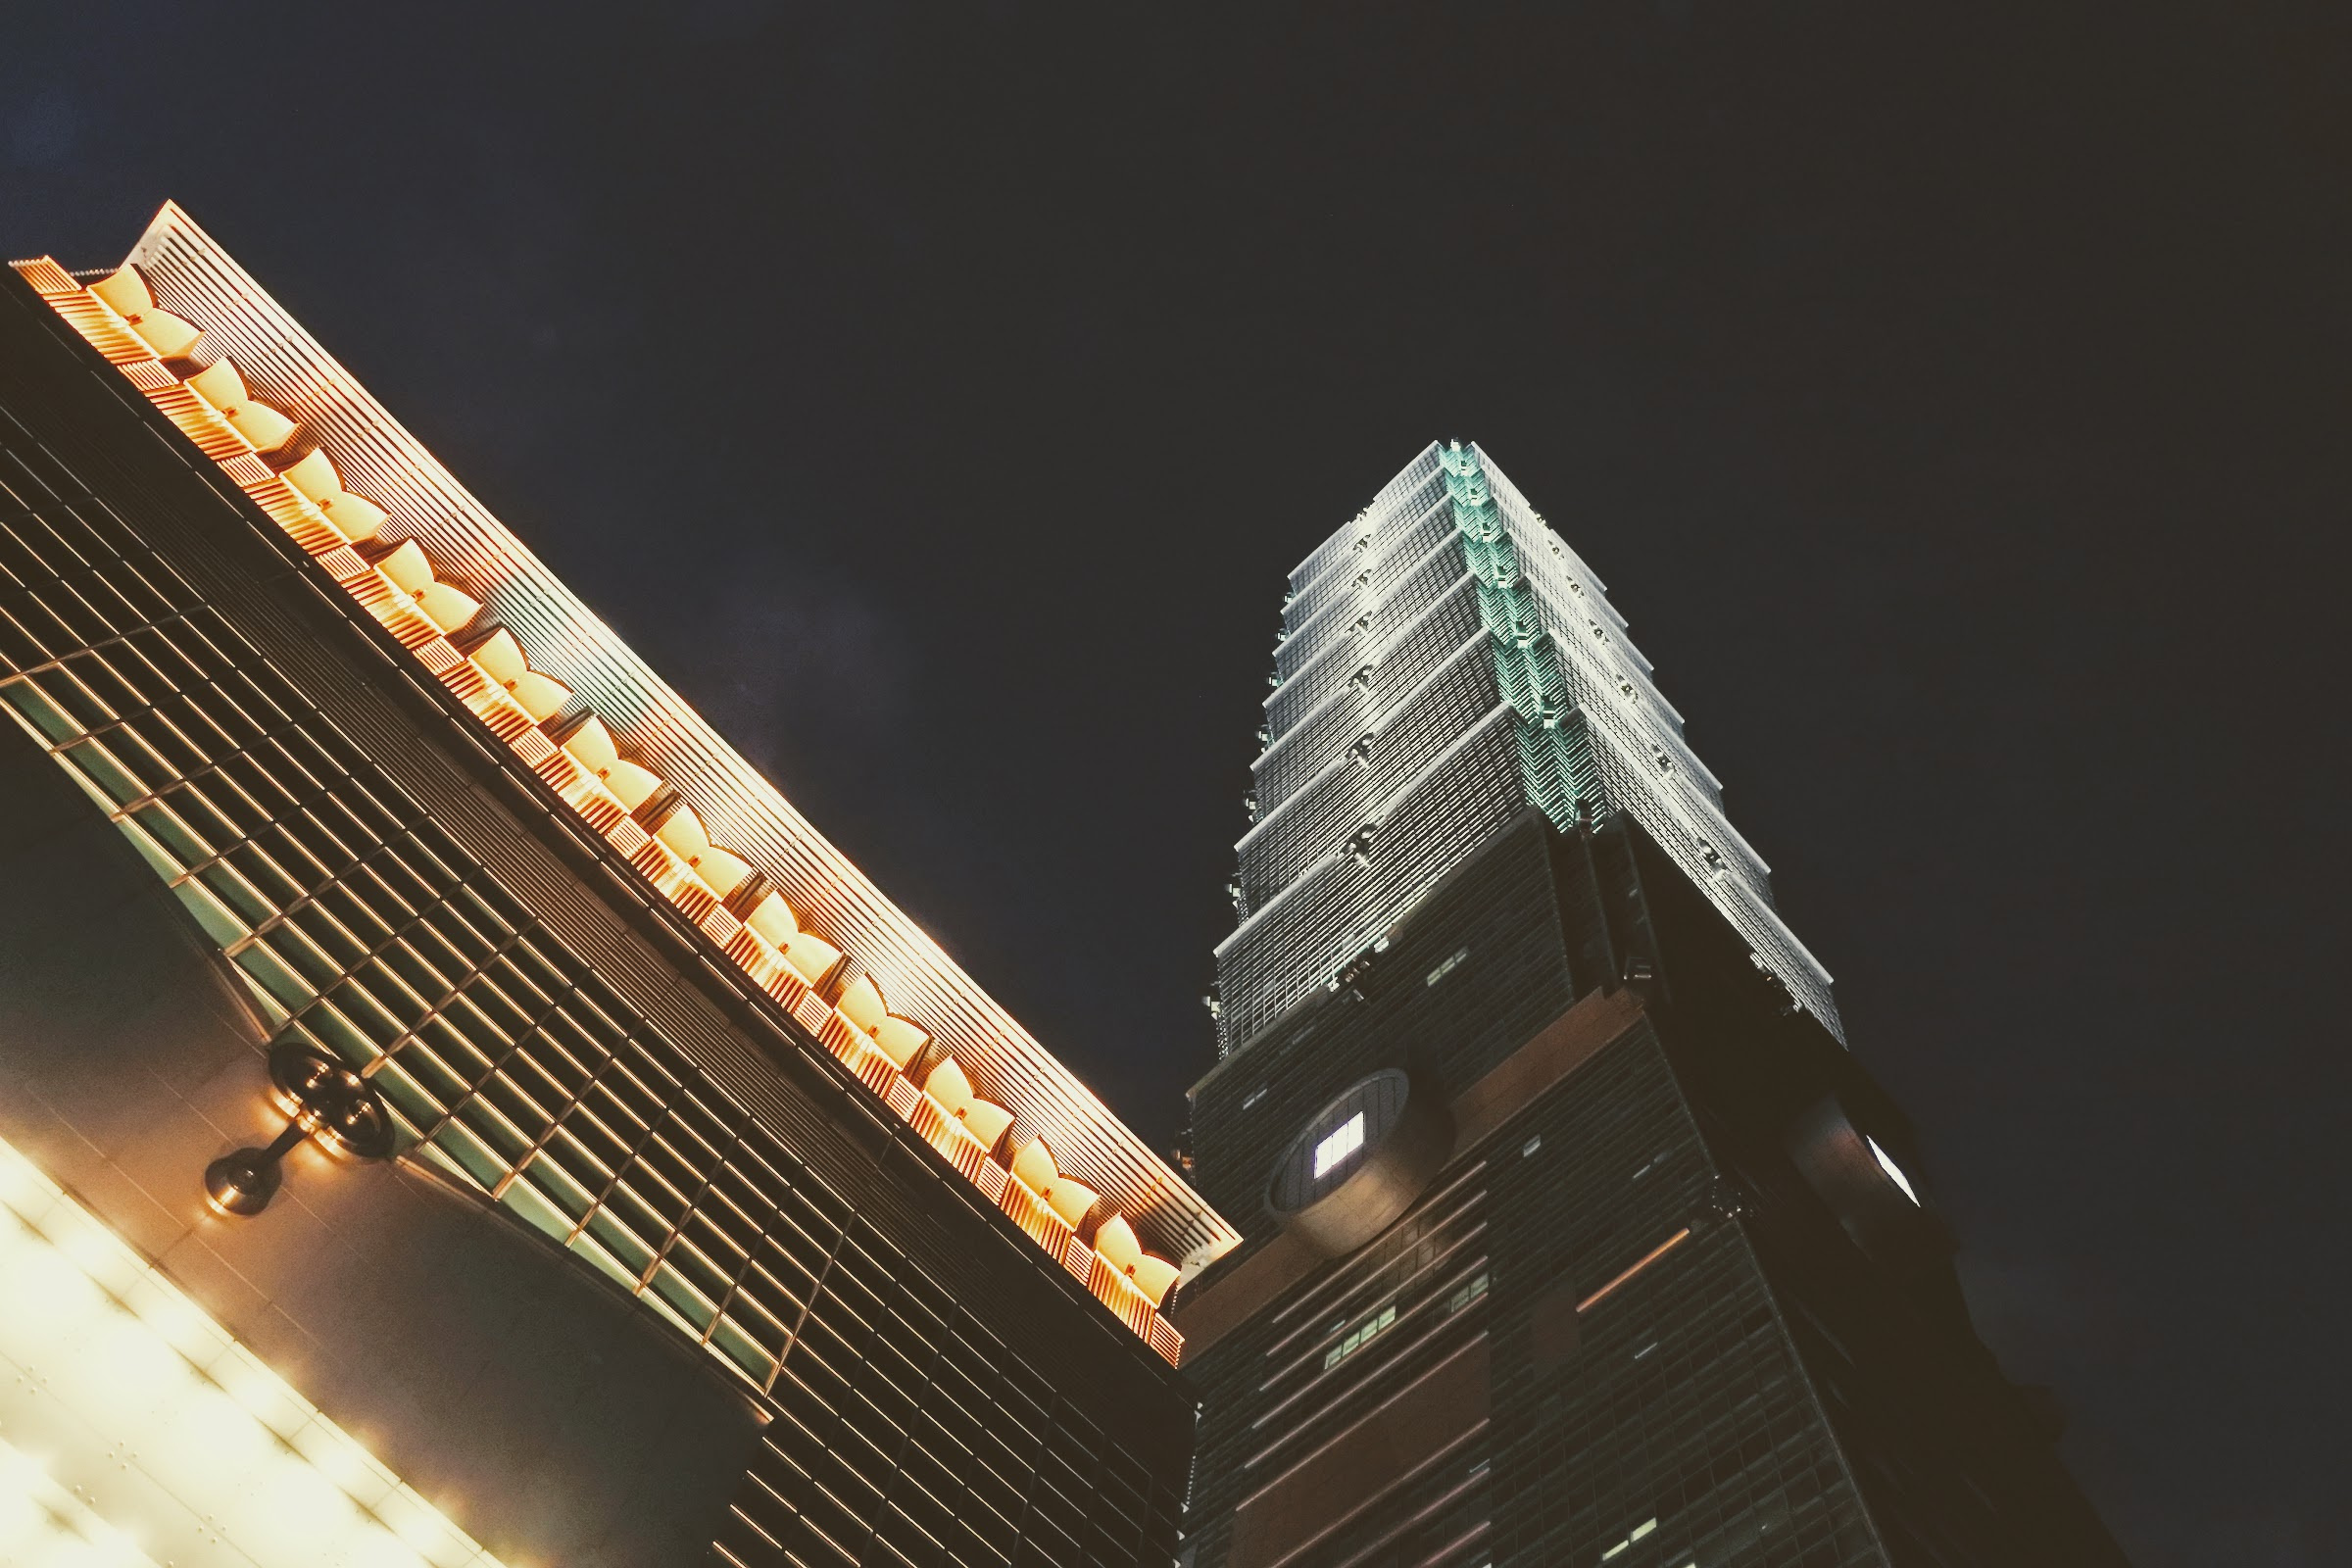 Taipei 101 was the tallest from 2004 to 2010